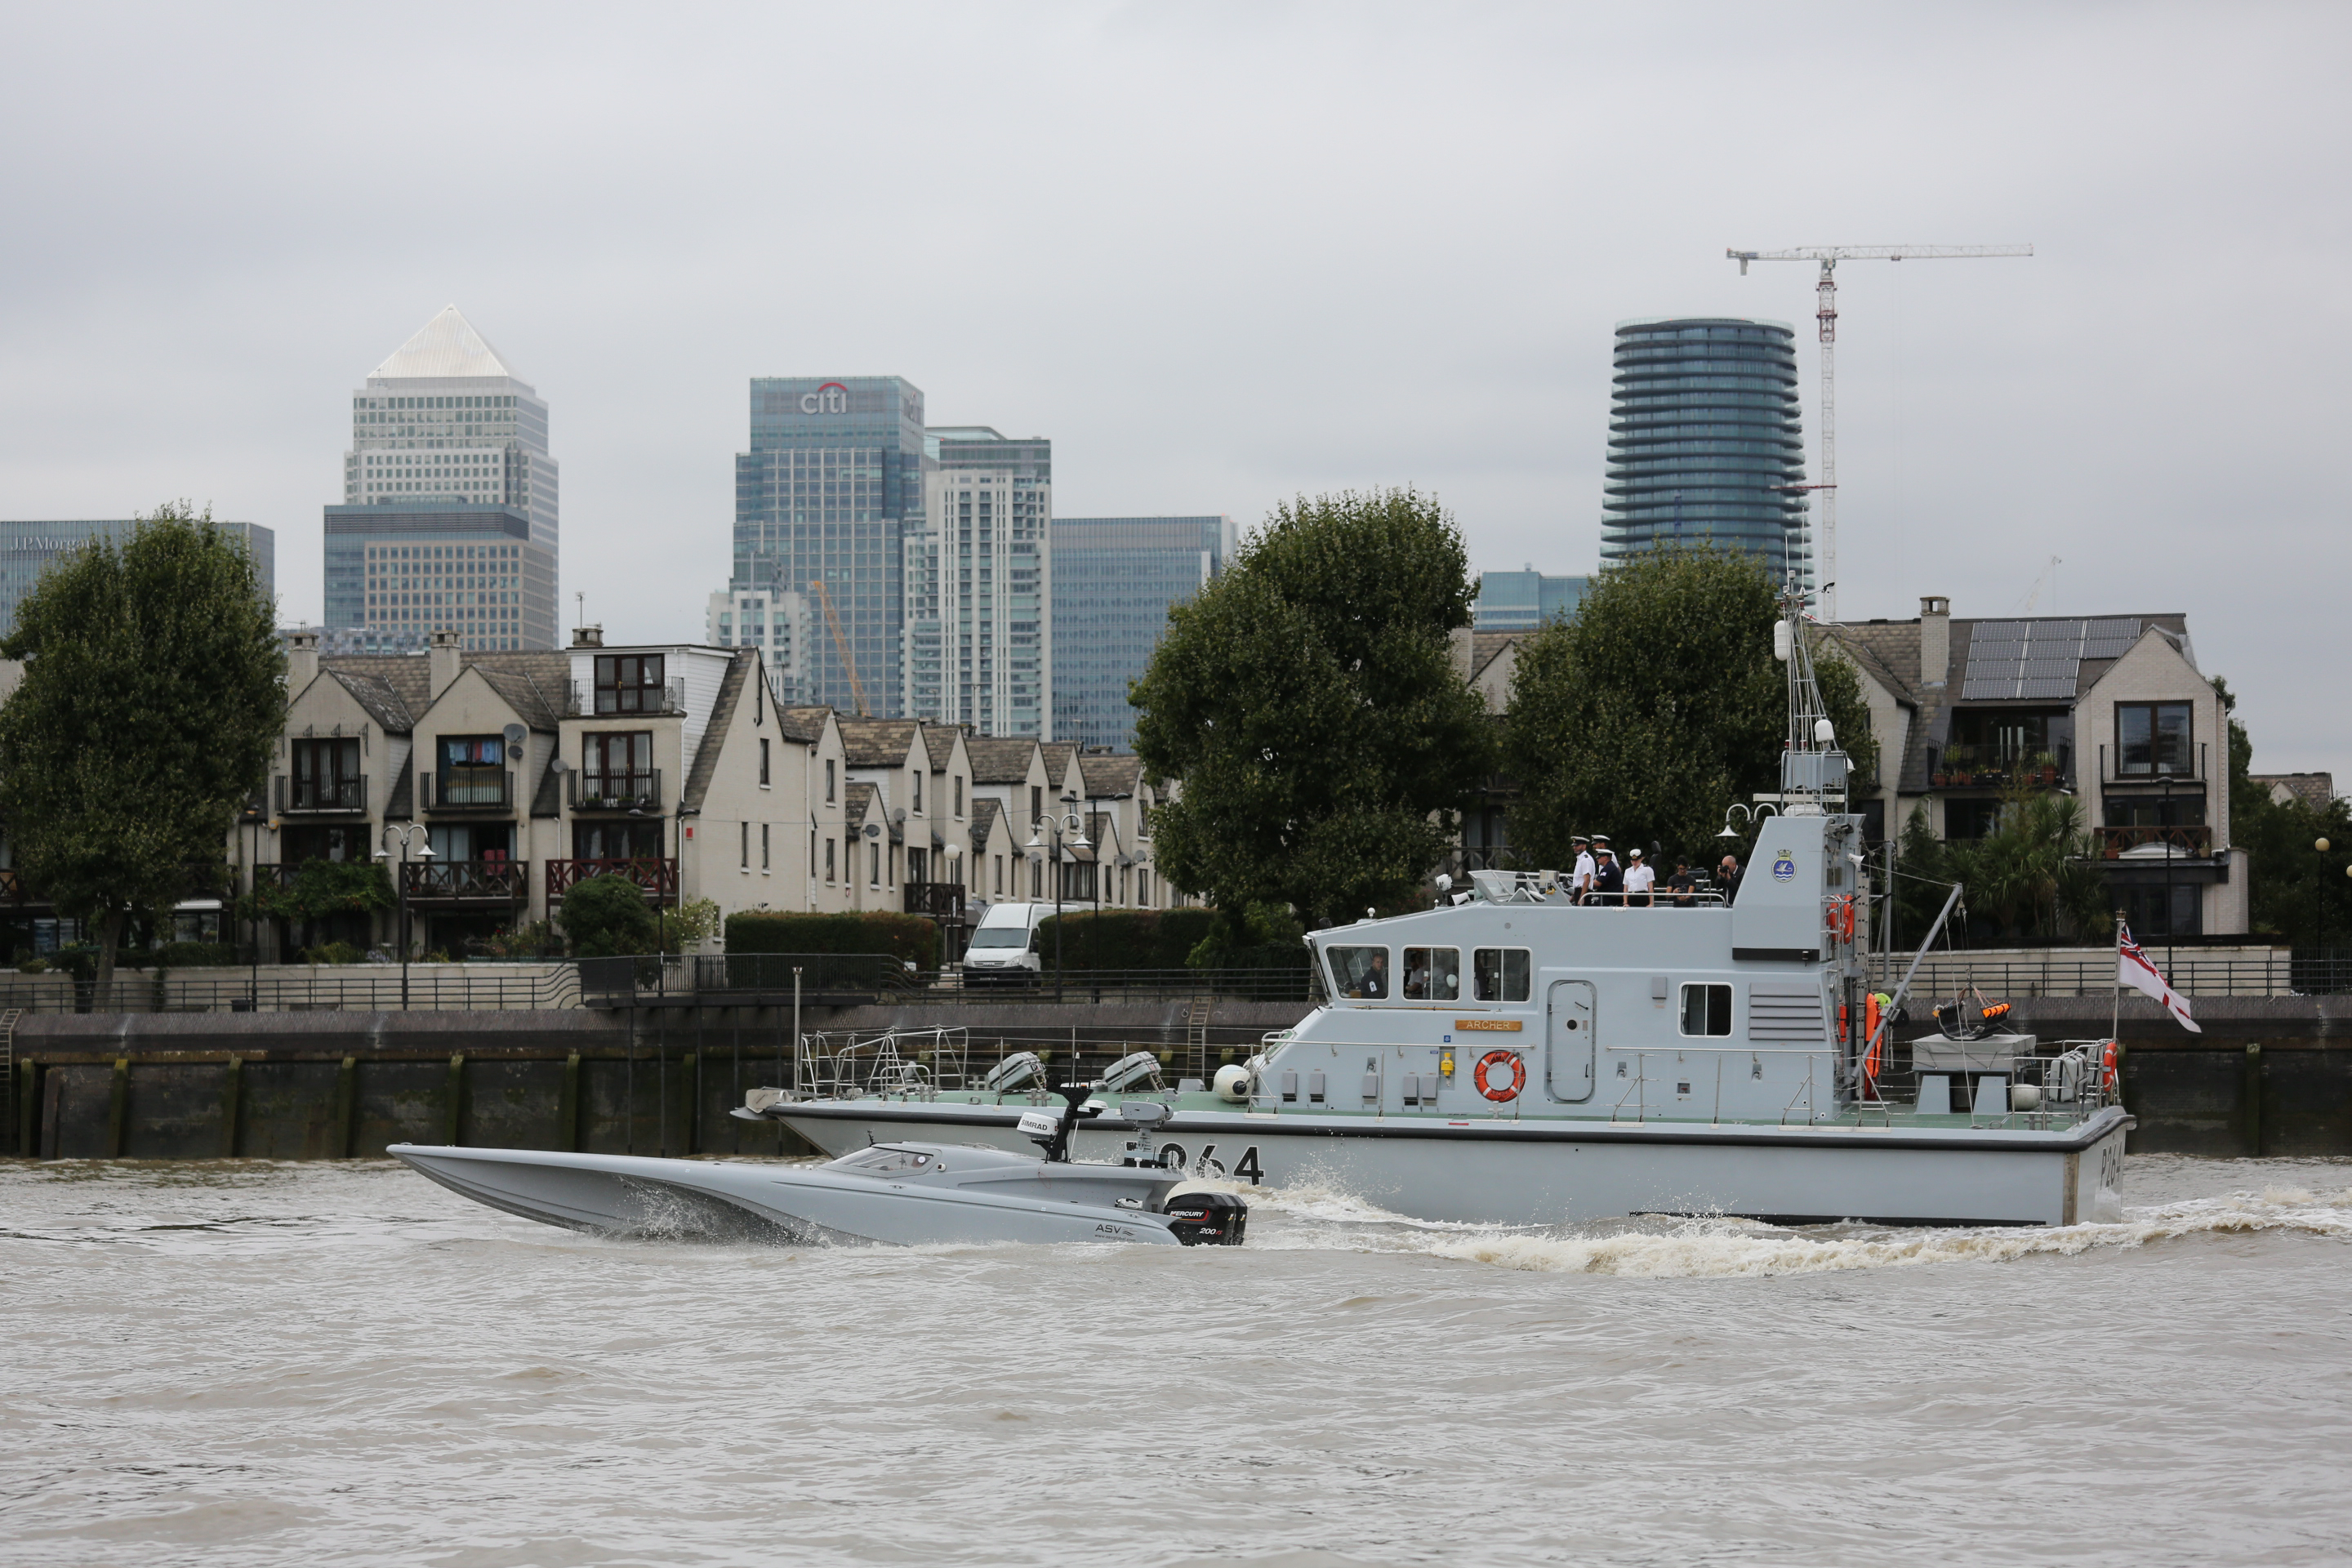 mod-mast-royal-navy-drone-boat-tower-bridge1.jpg